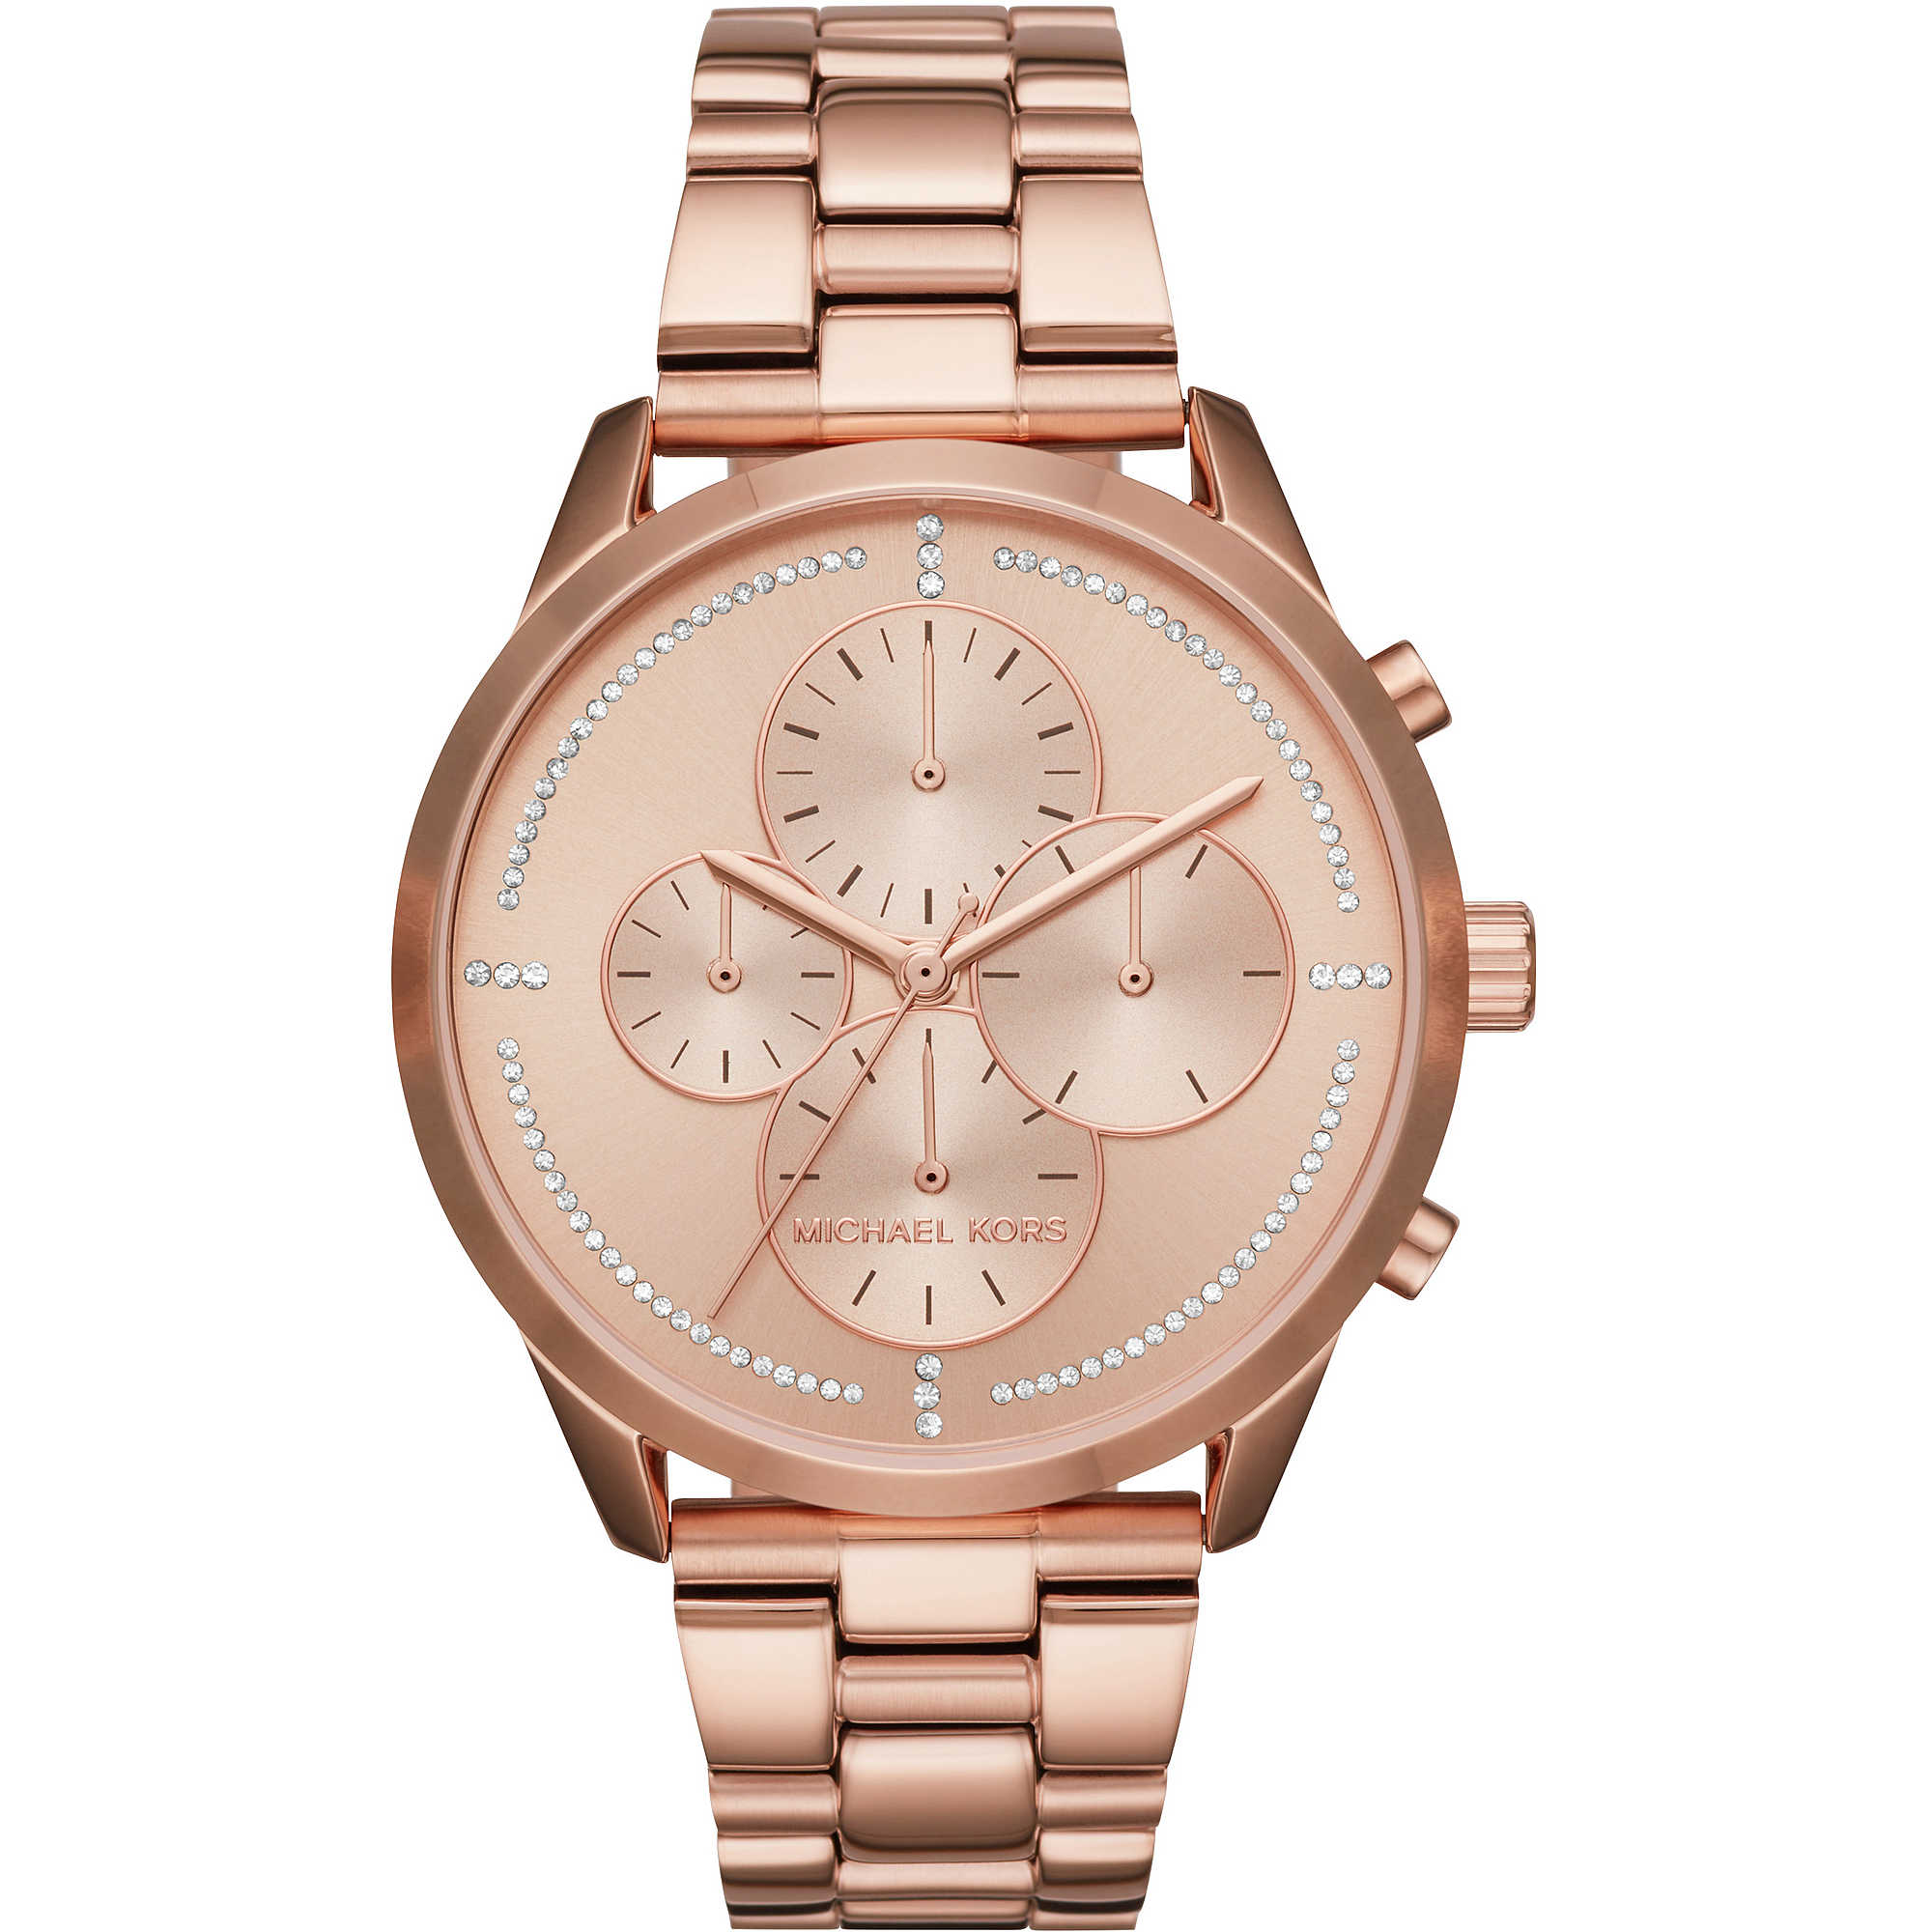 Watch Chronograph Woman Michael Kors Slater Mk6521 Chronographs